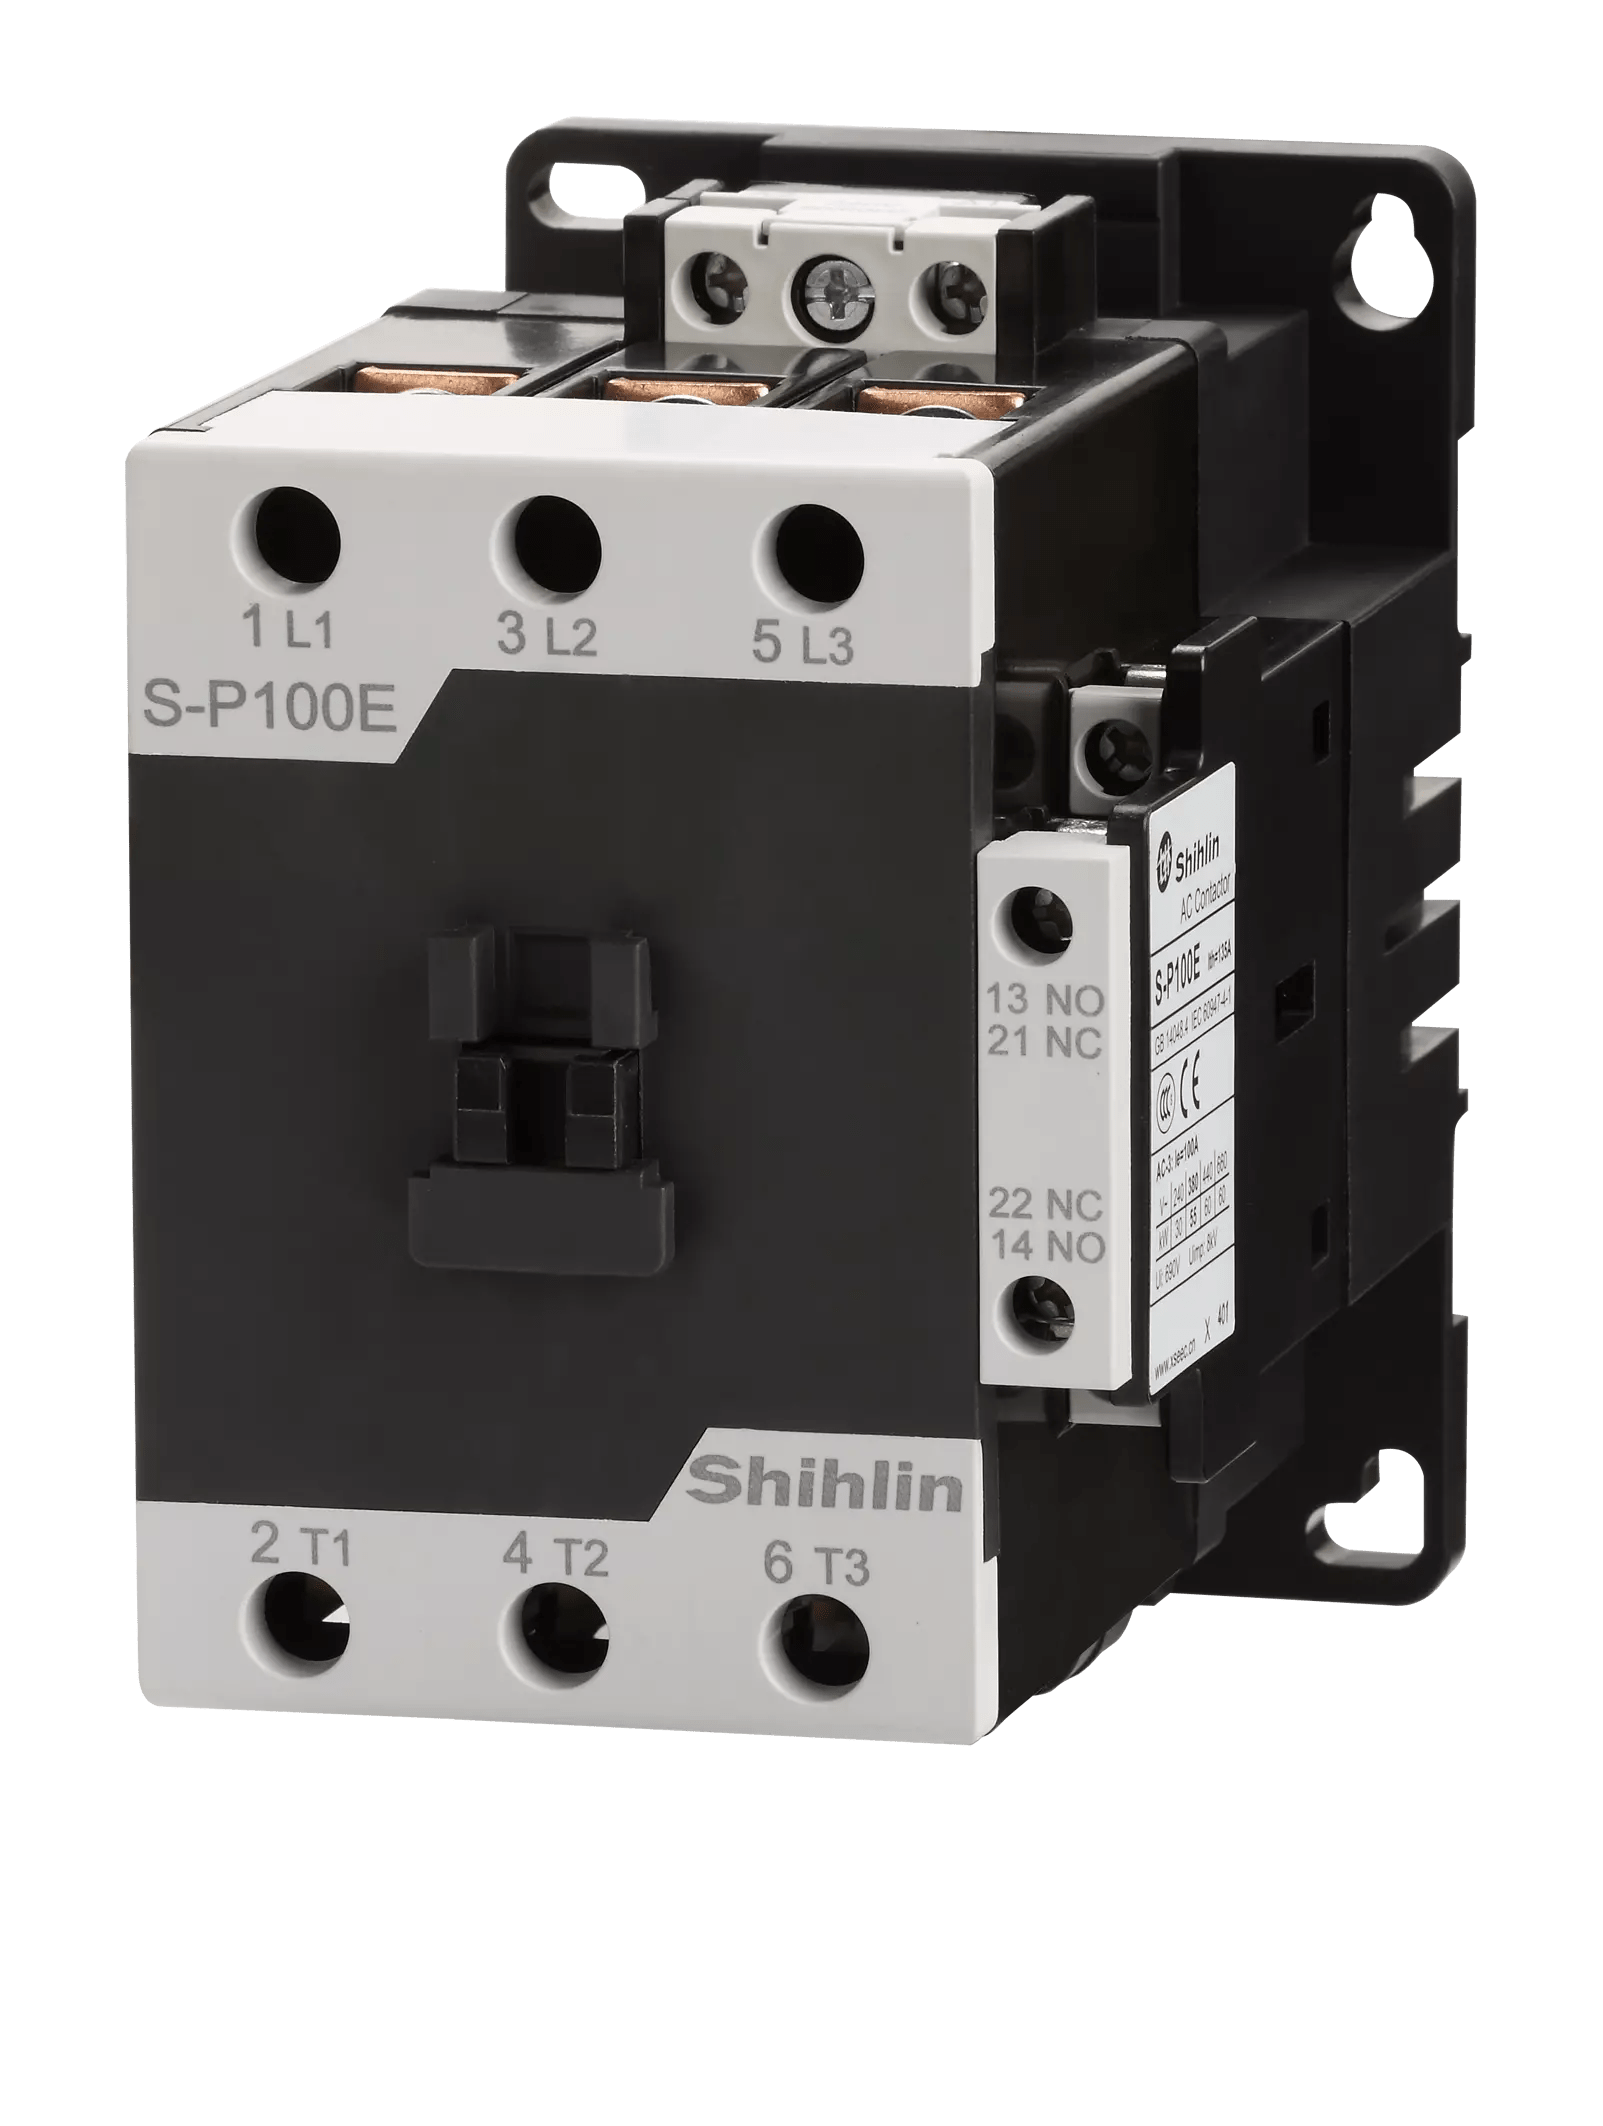 medium resolution of shihlin electric magnetic contactor s p100e